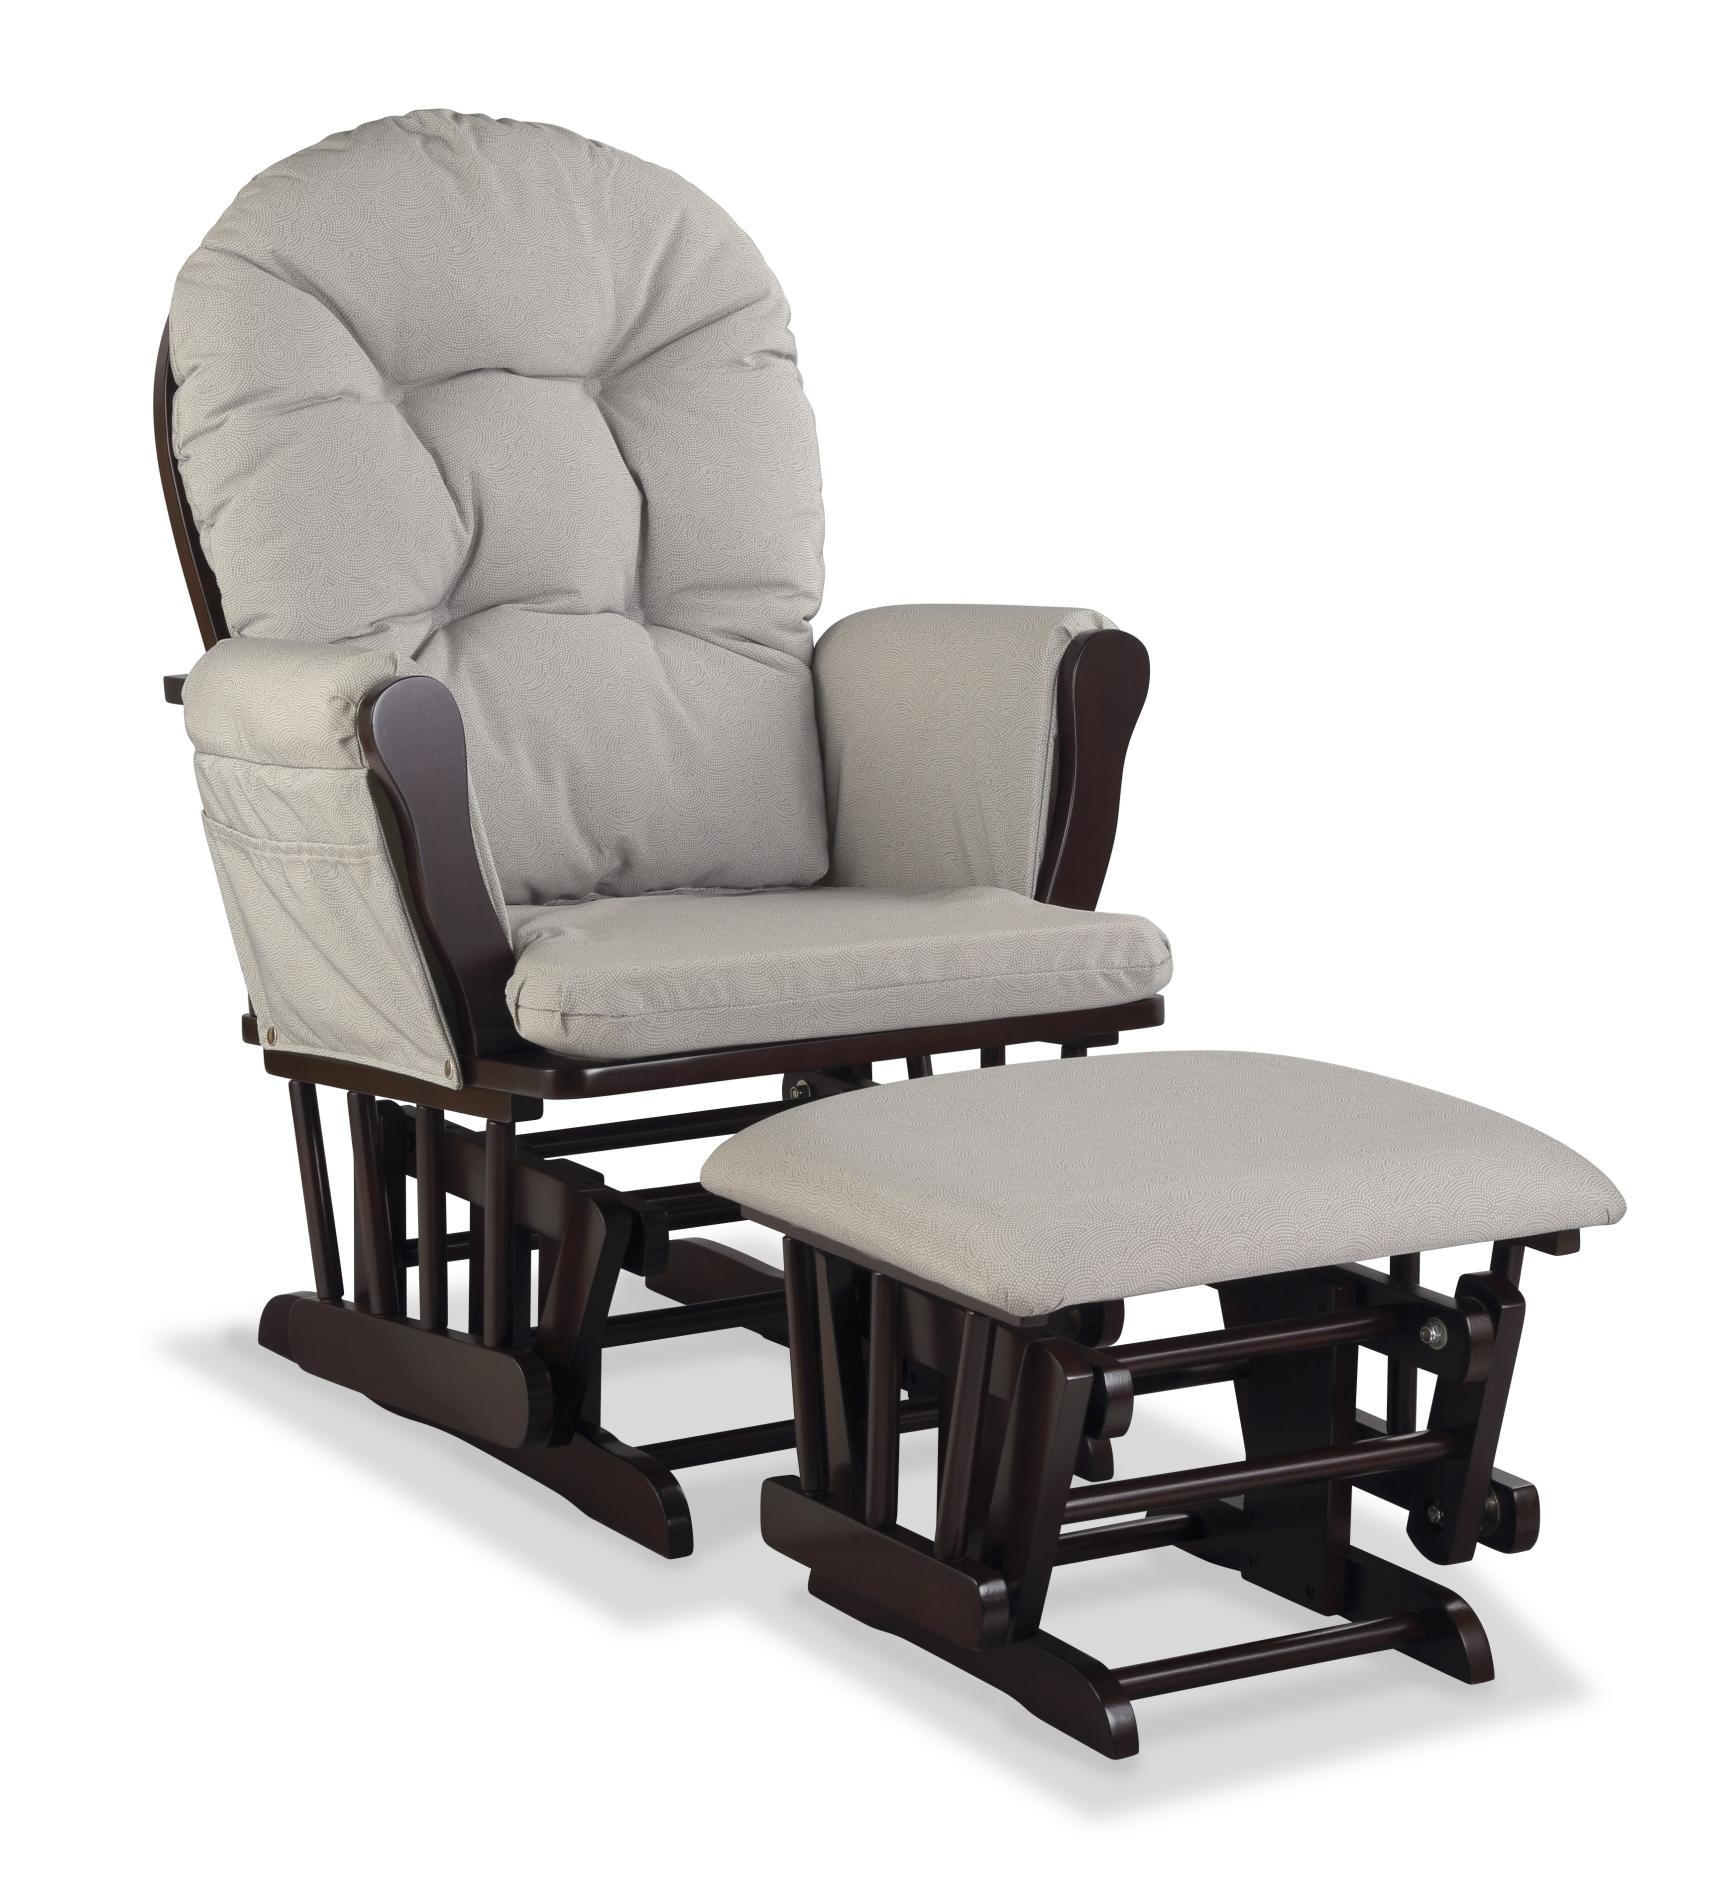 Nursery Glider Chairs Graco Nursery Glider Chair And Ottoman